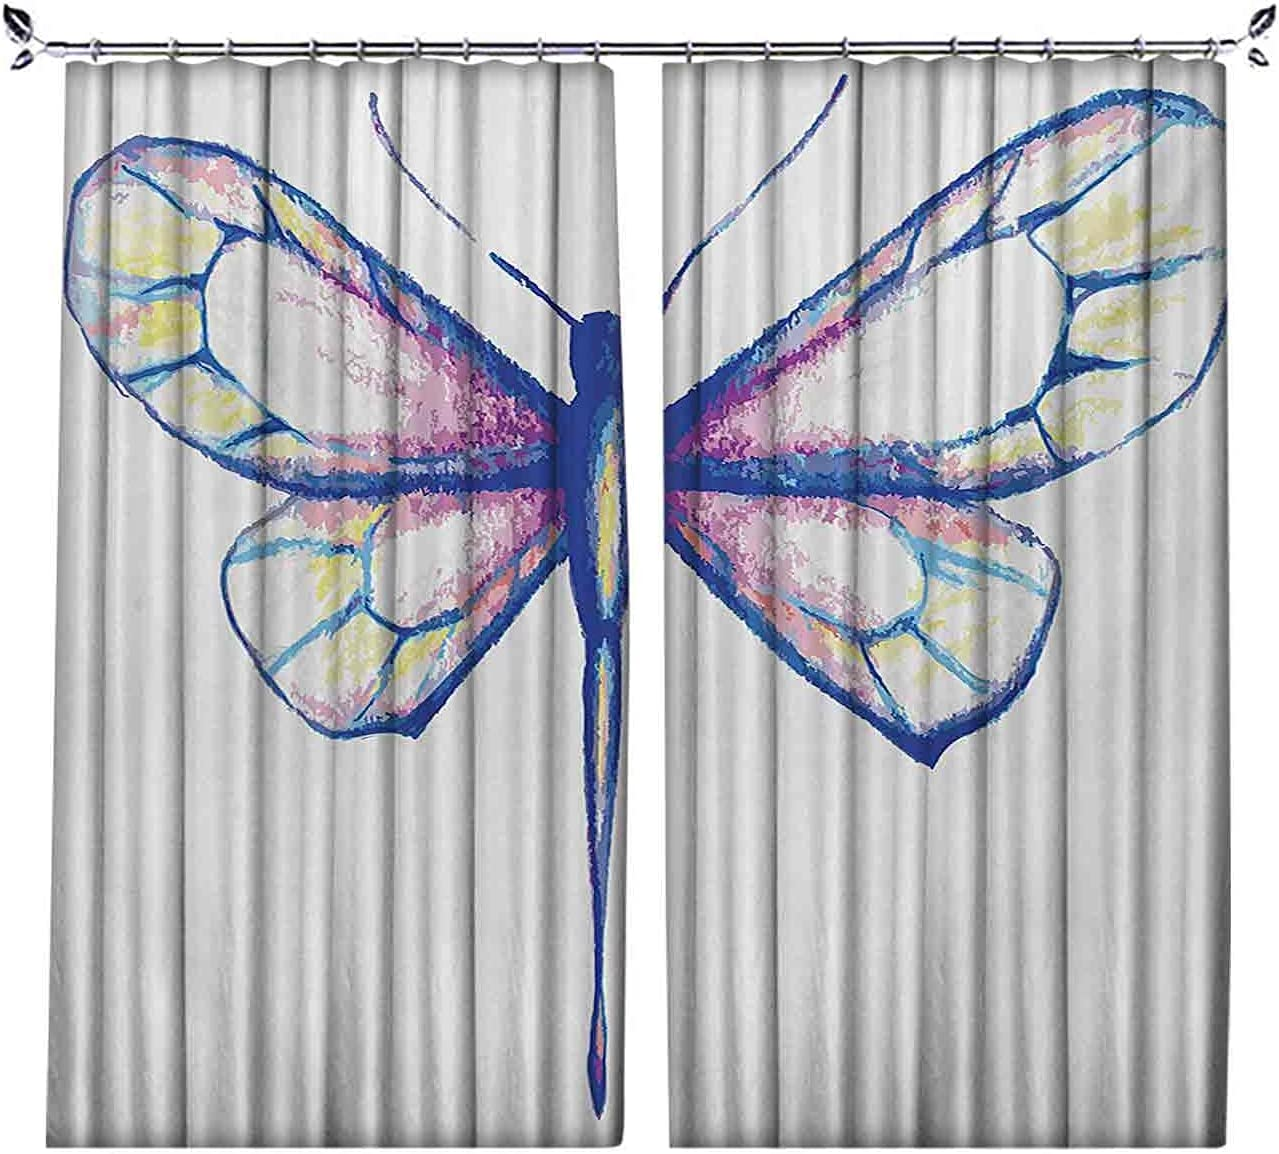 Room Special price Darkening Dragonfly Popular shop is the lowest price challenge Curtain S in Single Featured